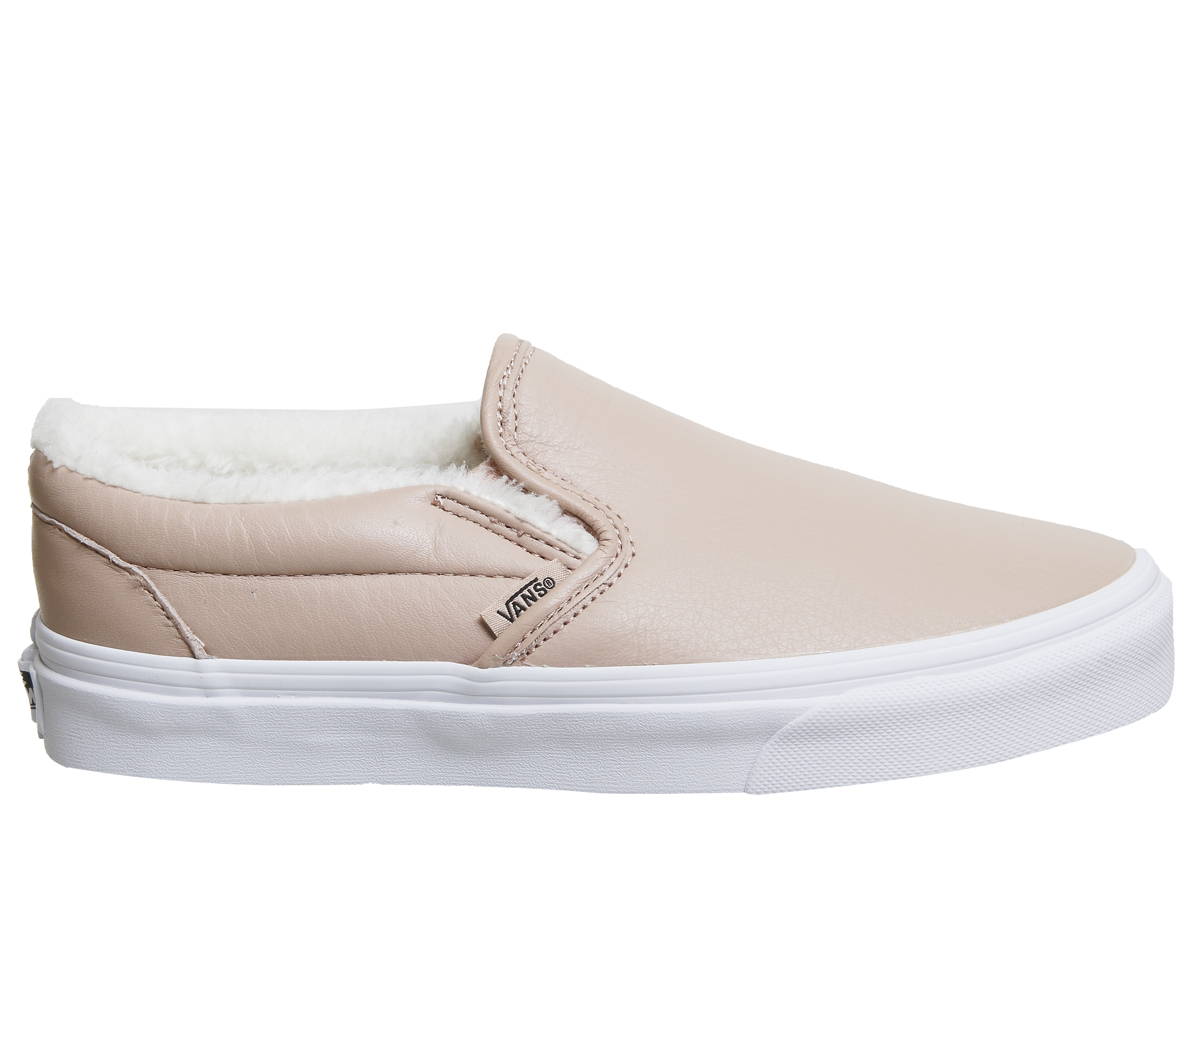 af618189eef Sentinel Womens Vans Vans Classic Slip On MAHOGANY ROSE TRUE WHITE  SHEARLING Trainers Sho